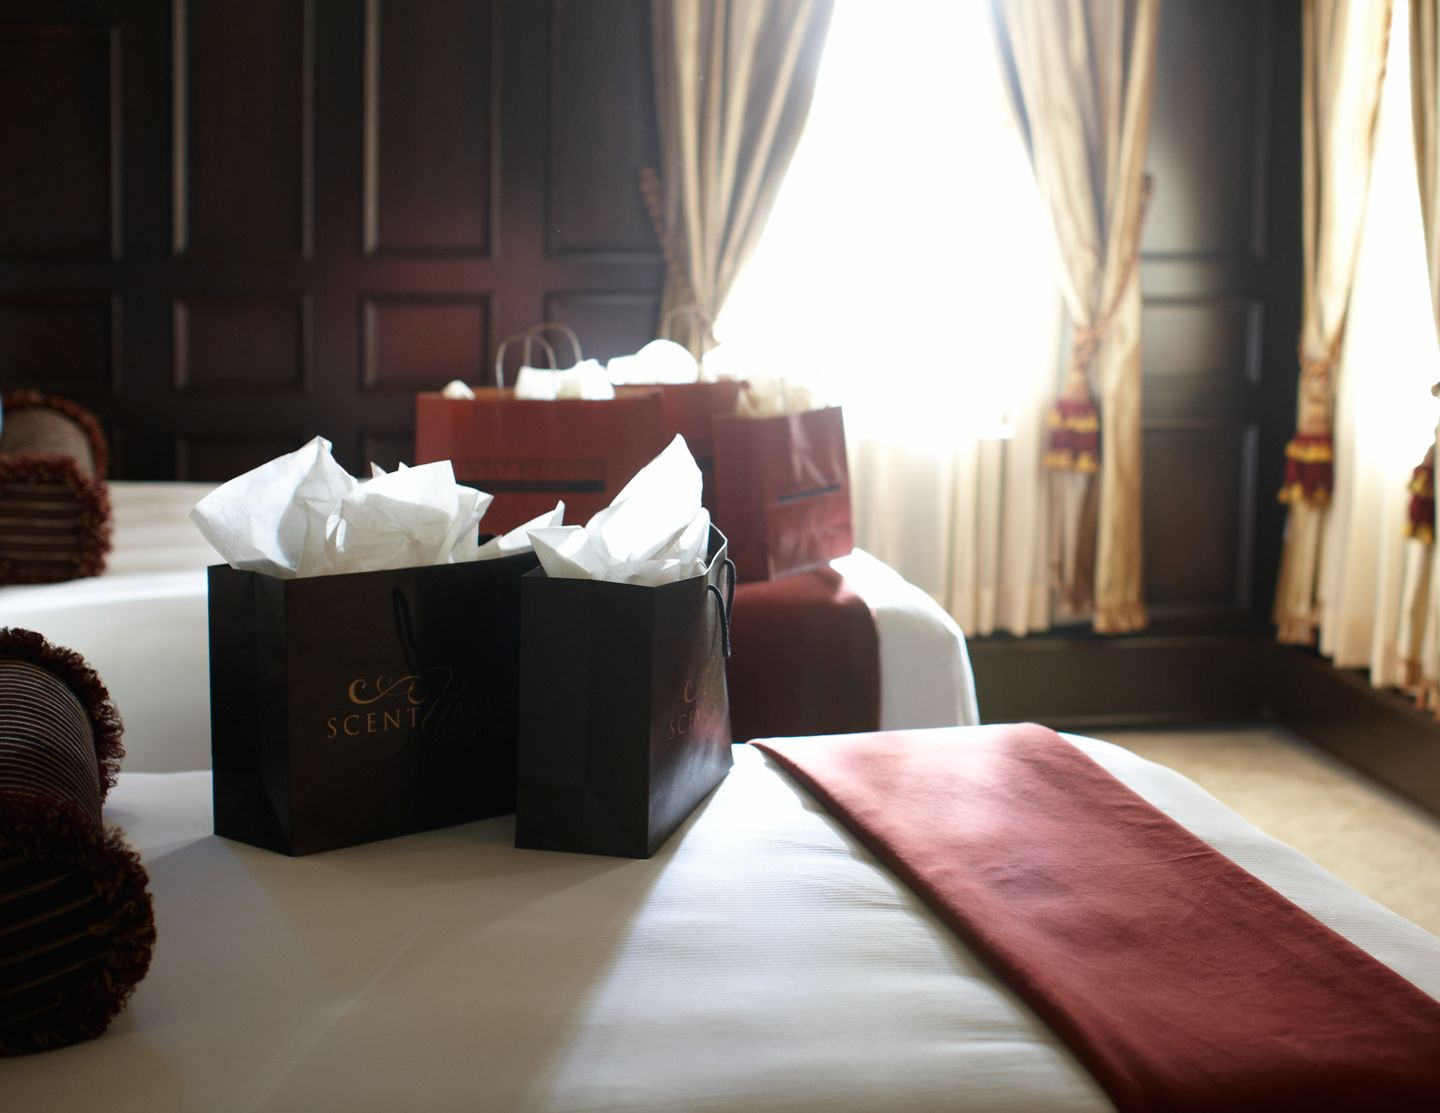 Shopping bags in a hotel room